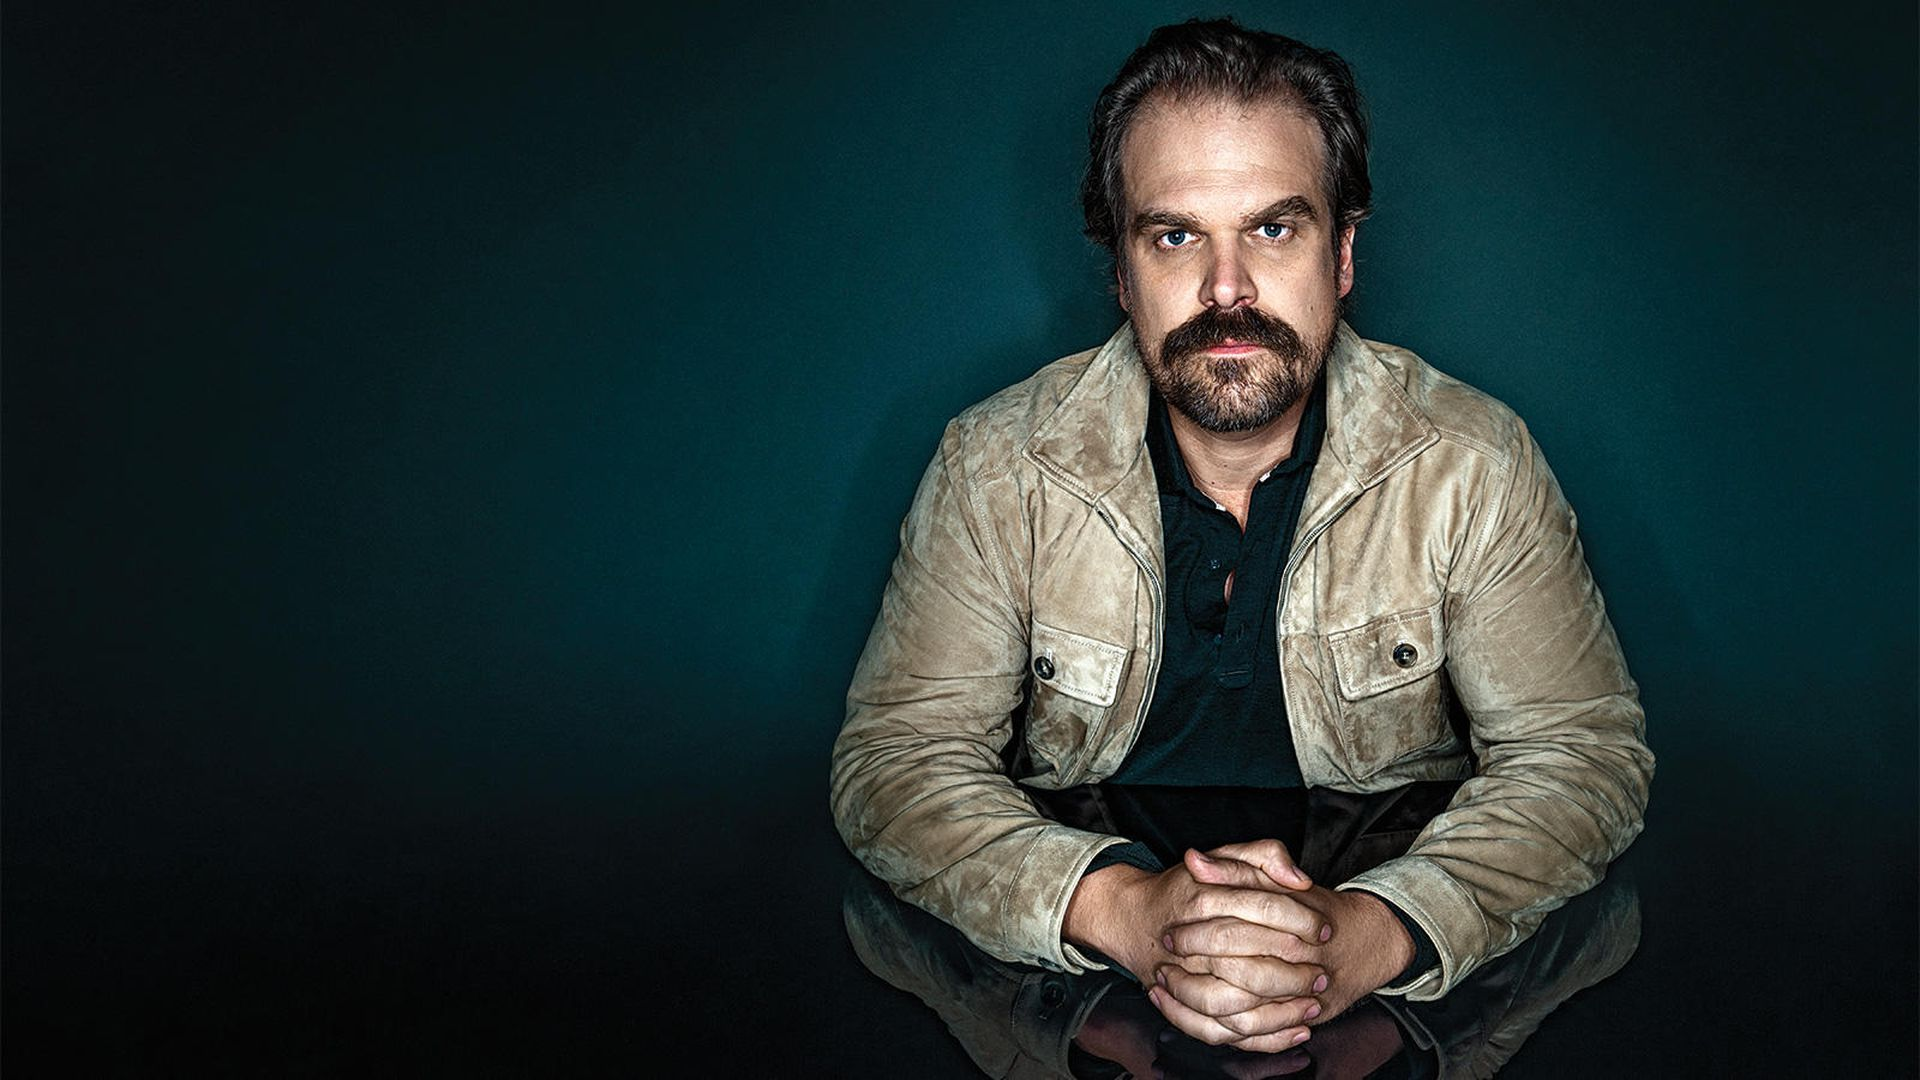 Black Widow Star David Harbour Wants You to Text Him, Hopes to Get Project Going Featuring Fans and Friends